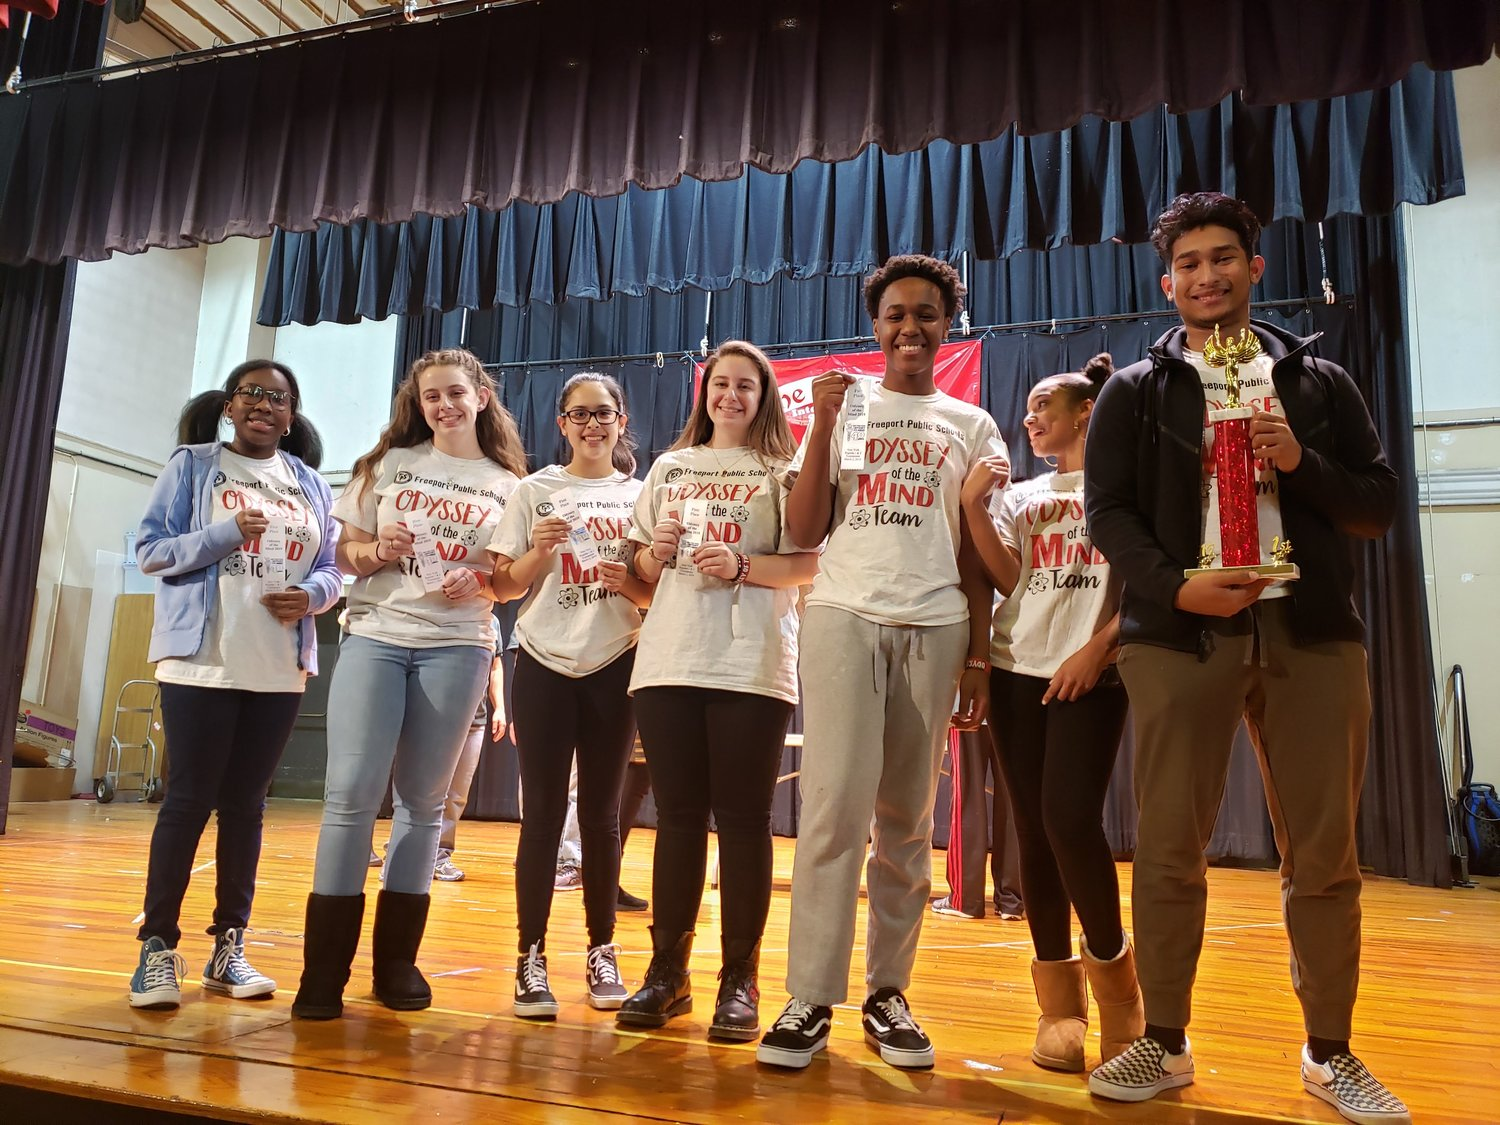 After placing first in one category at the March 2 Odyssey of the Mind competition, Freeport High School students will take part in the state competition later this moth.